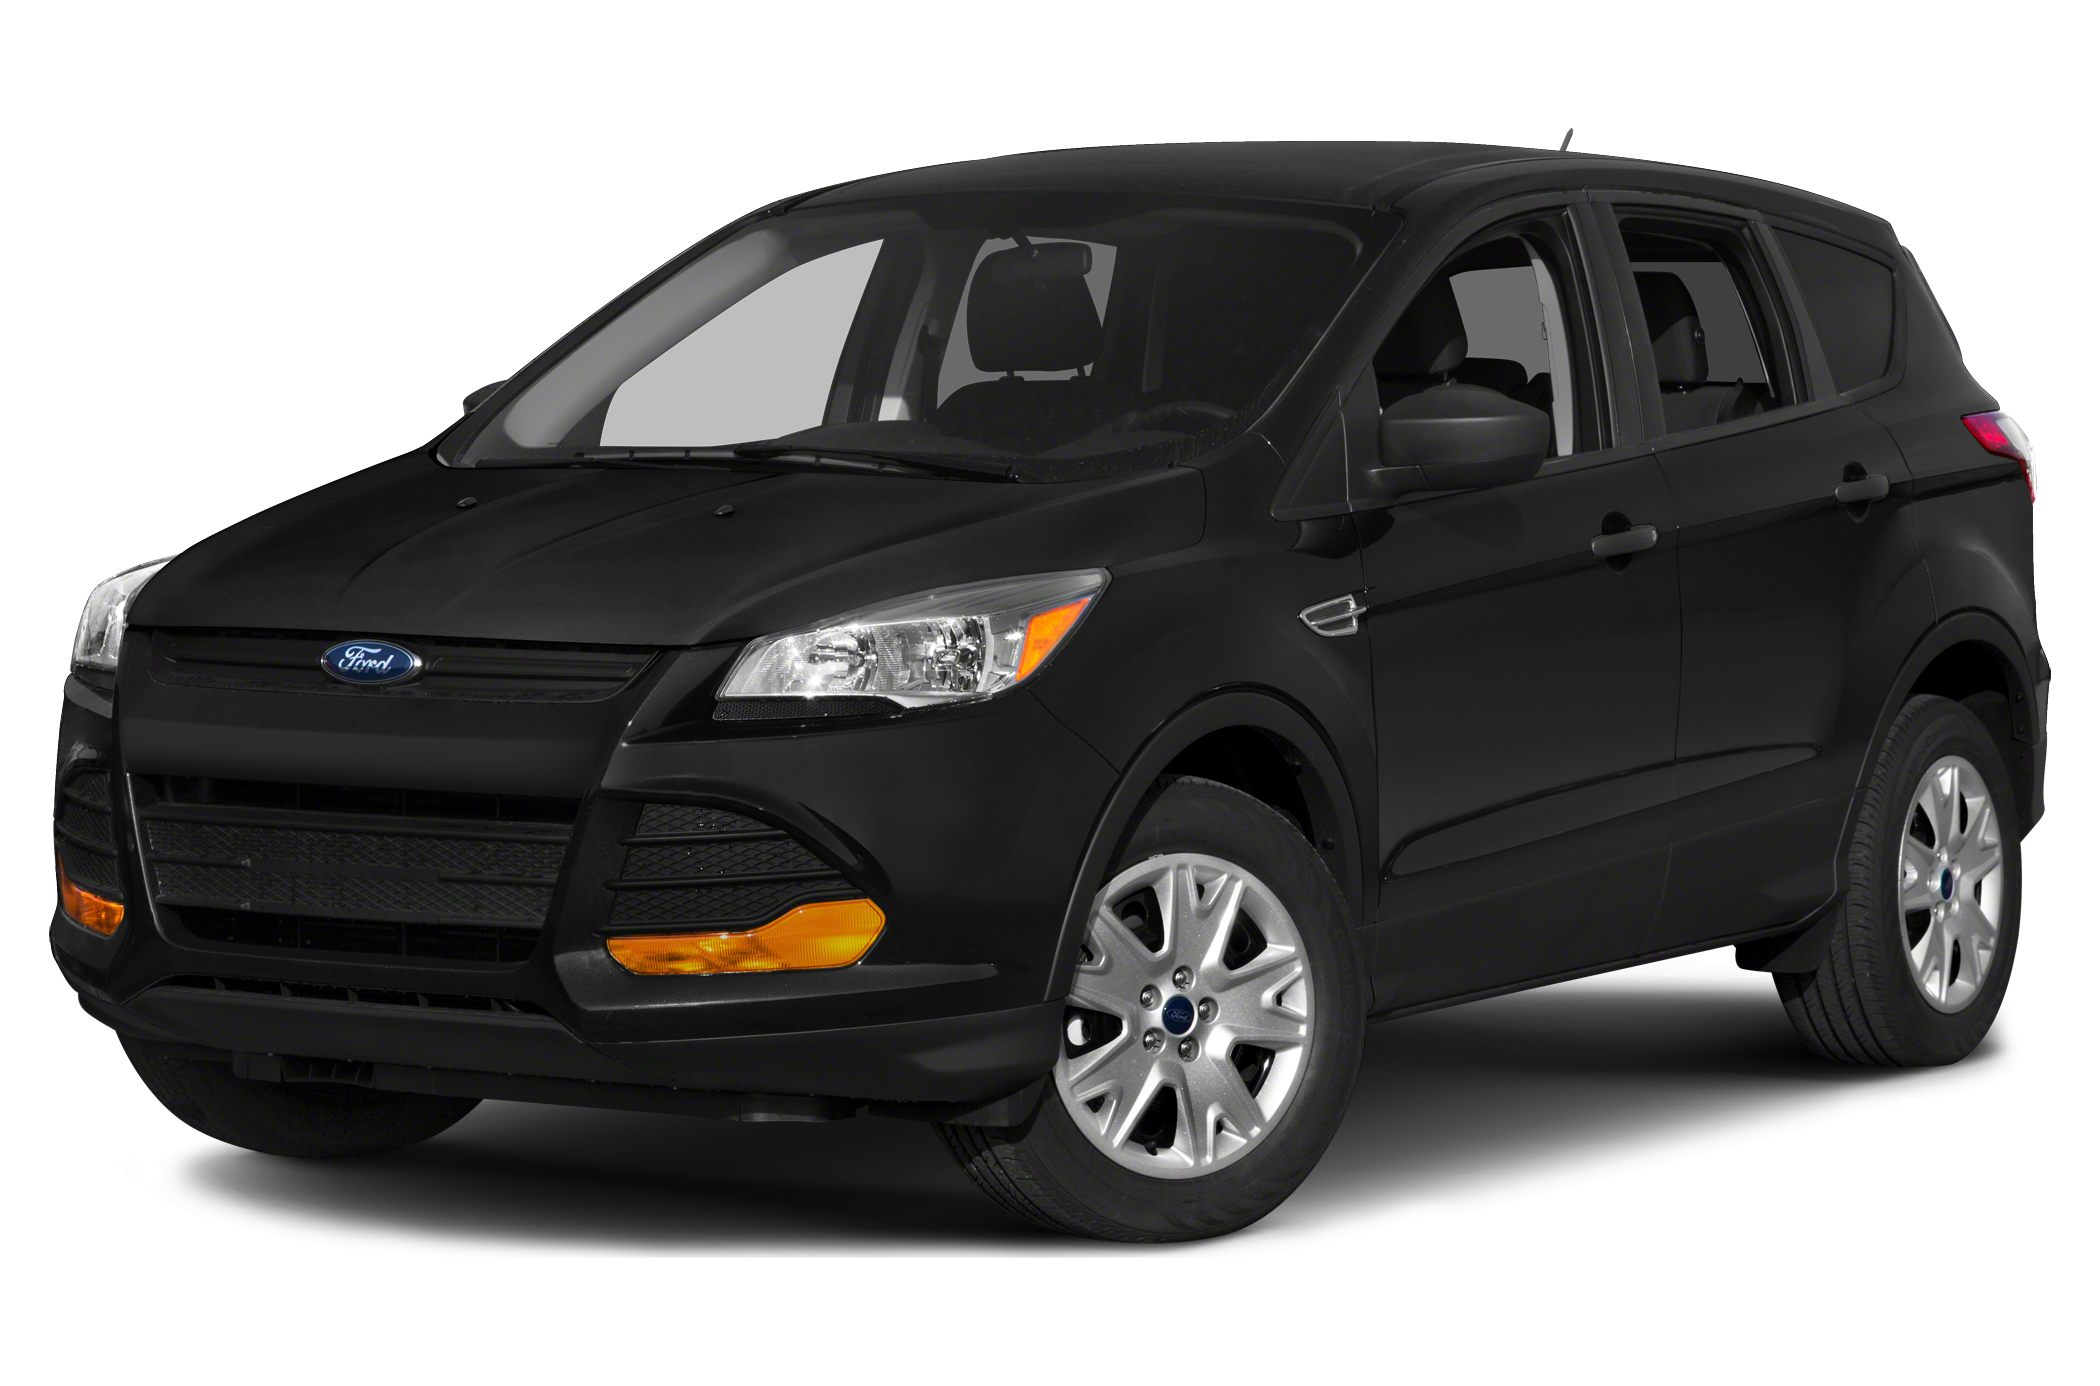 2015 Ford Escape SE SUV for sale in Mentor for $26,055 with 0 miles.